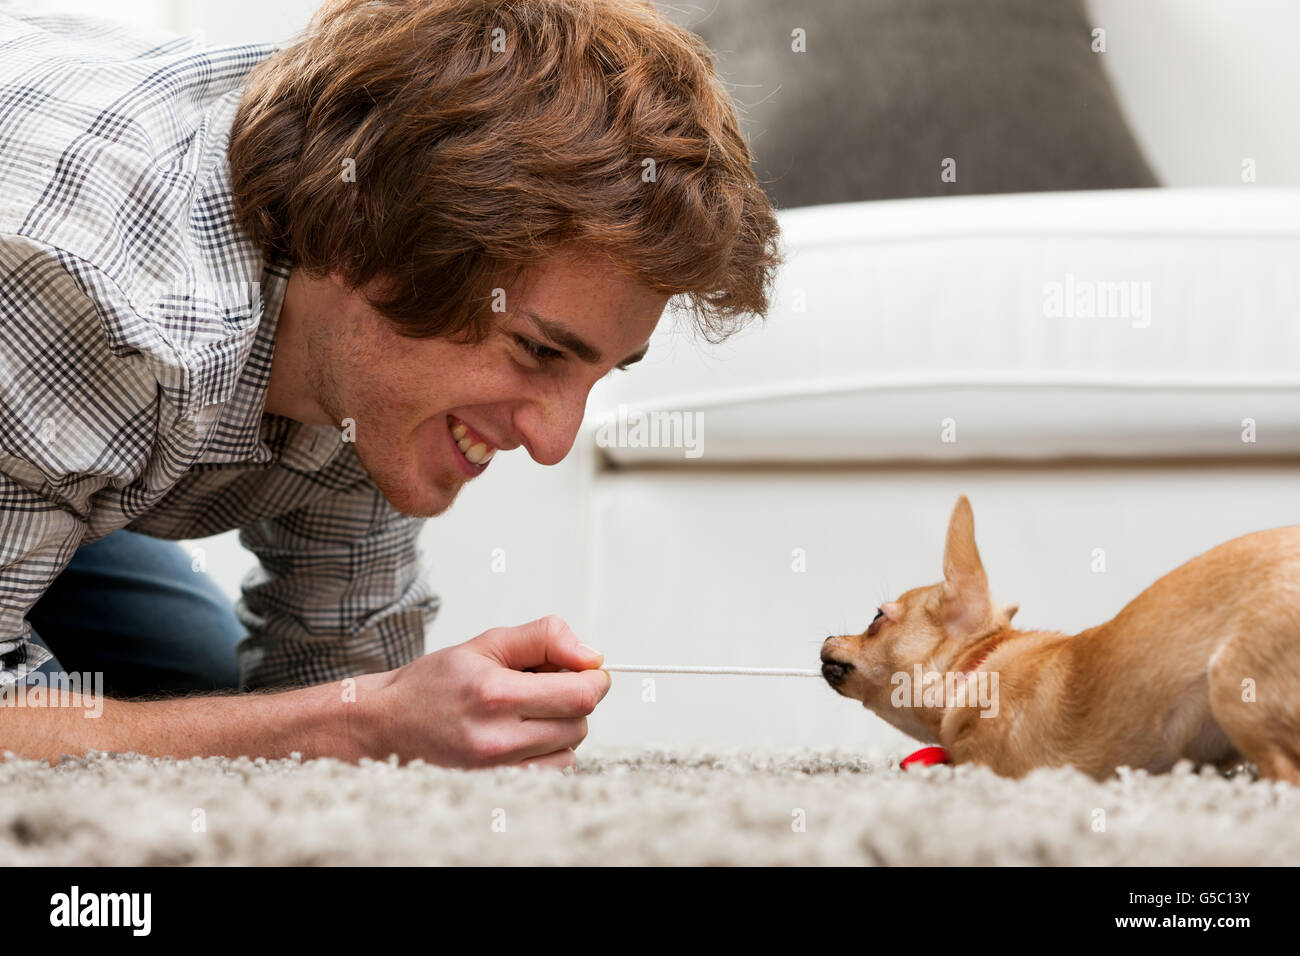 Adorable little brown chihuahua having a tug of war with a handsome smiling young man crouching on a rug pulling - Stock Image